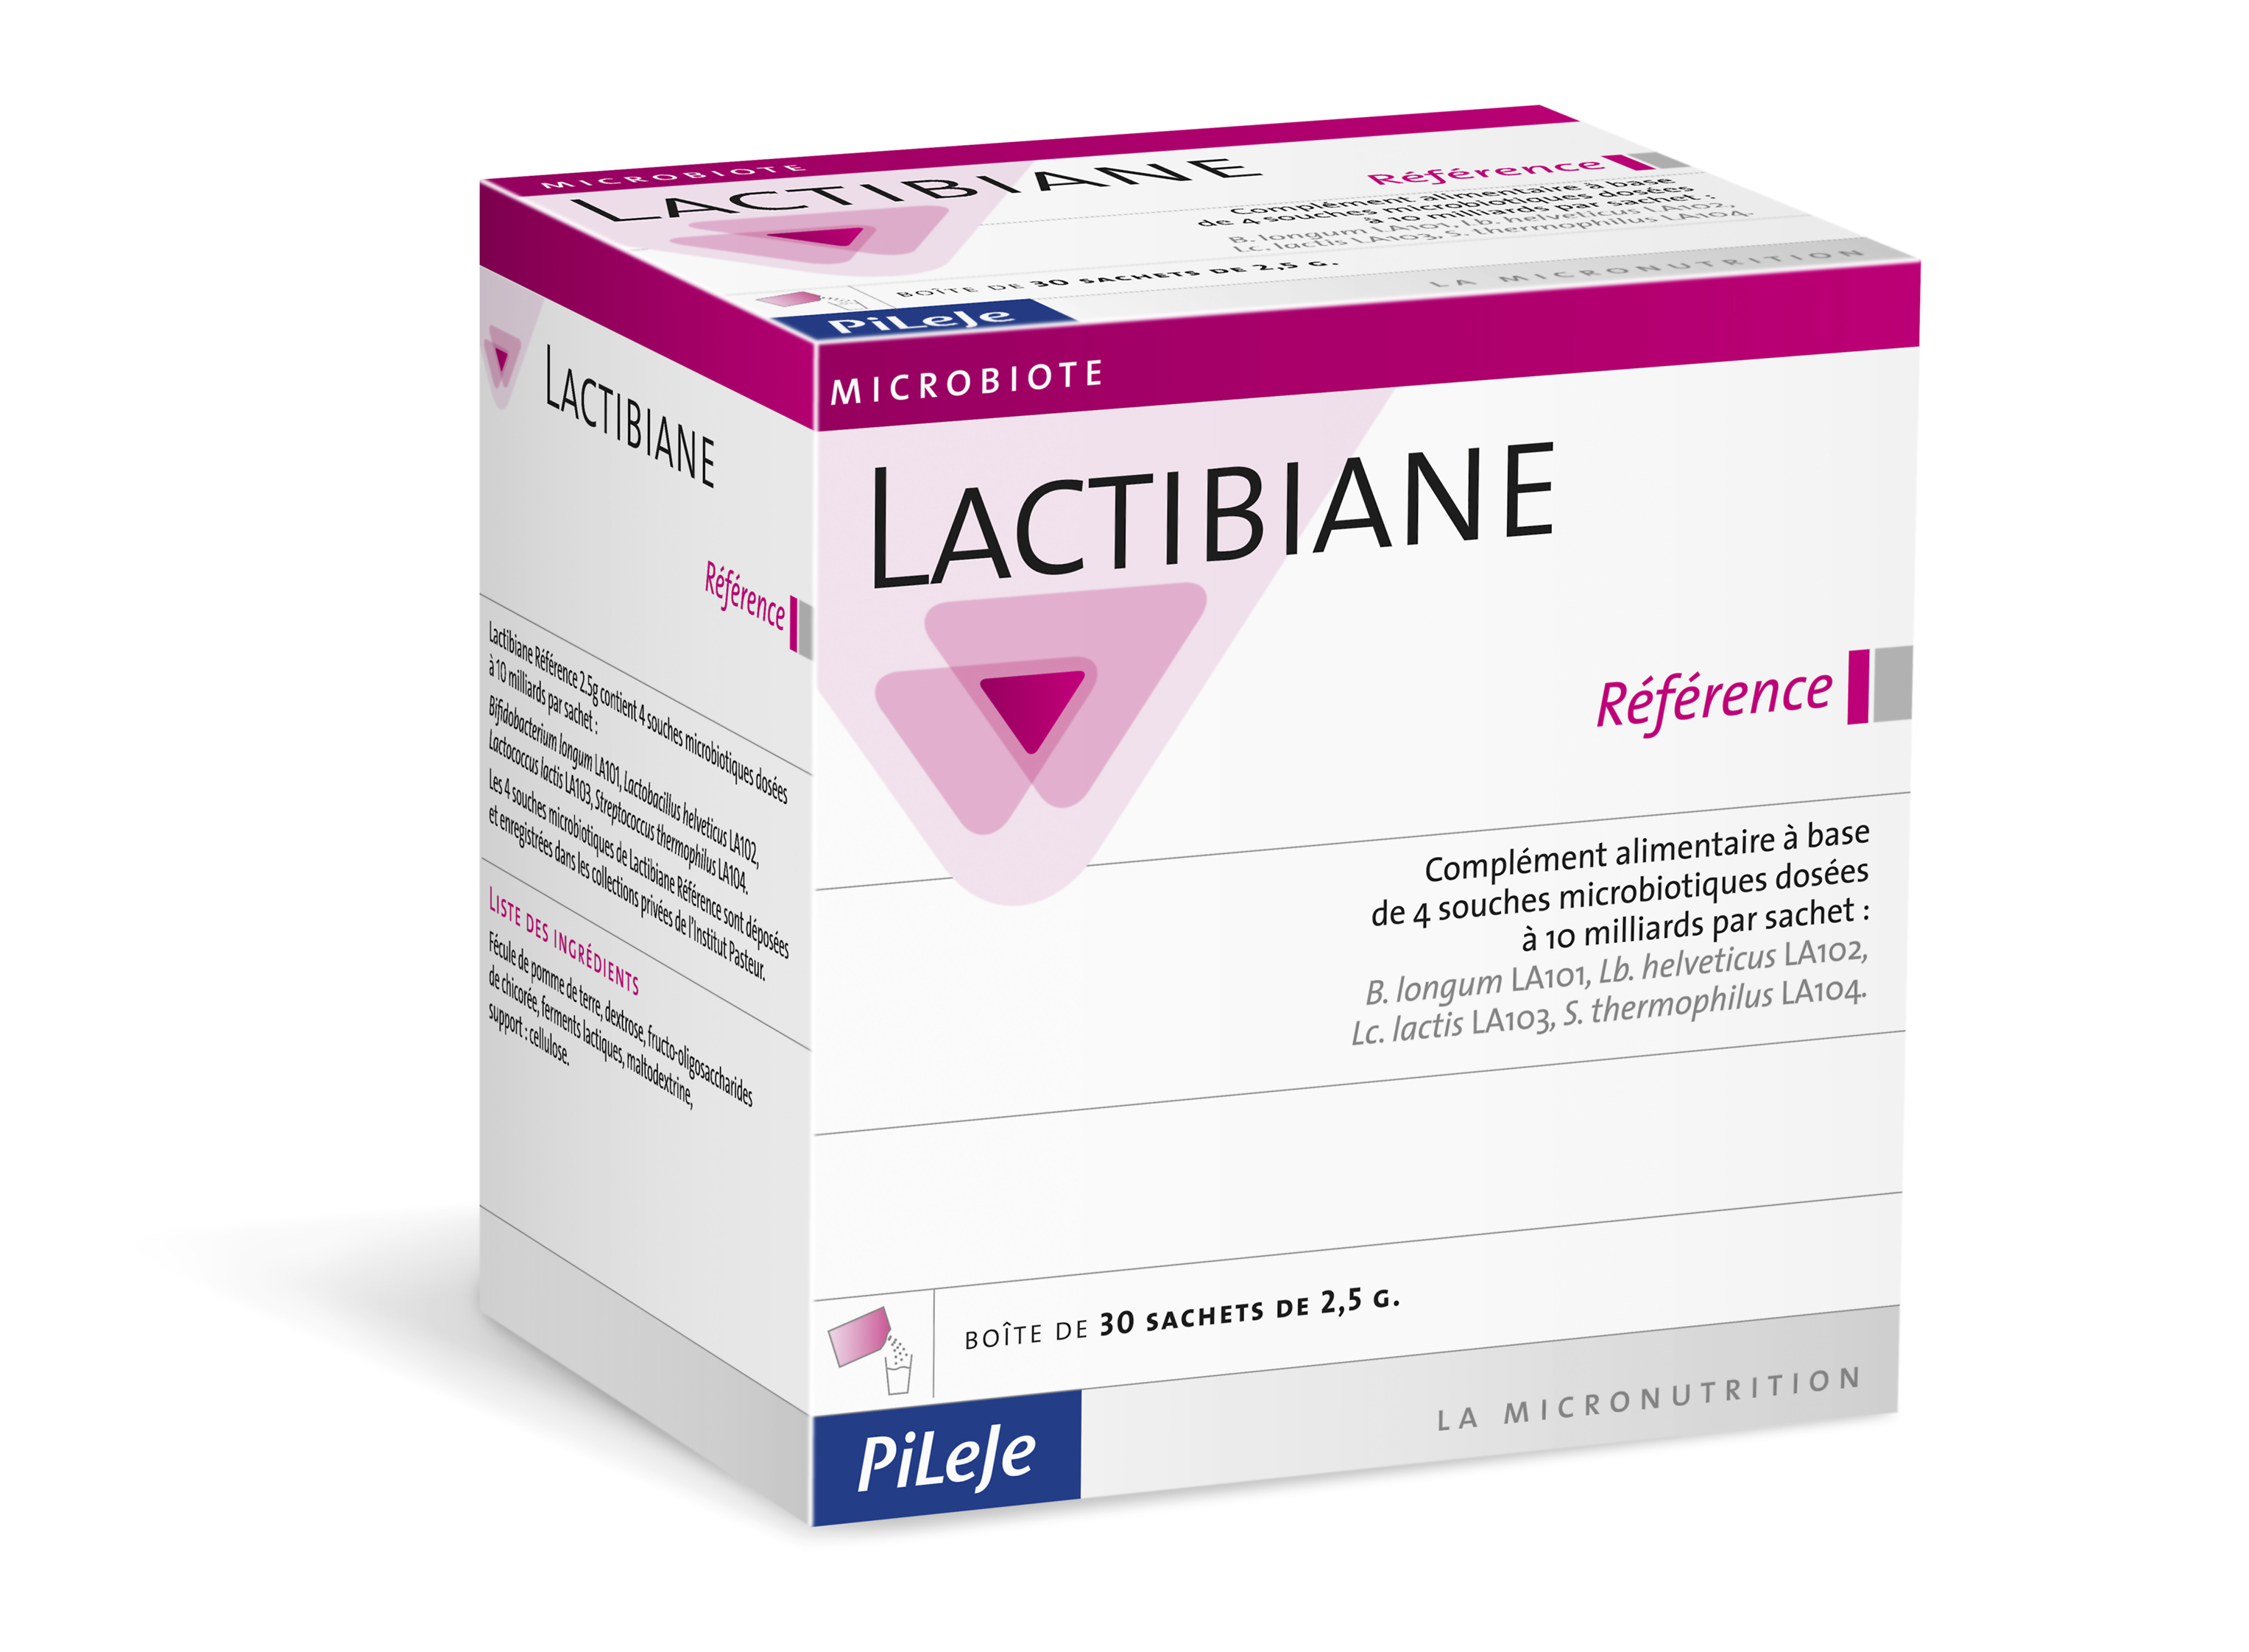 lactibian reference